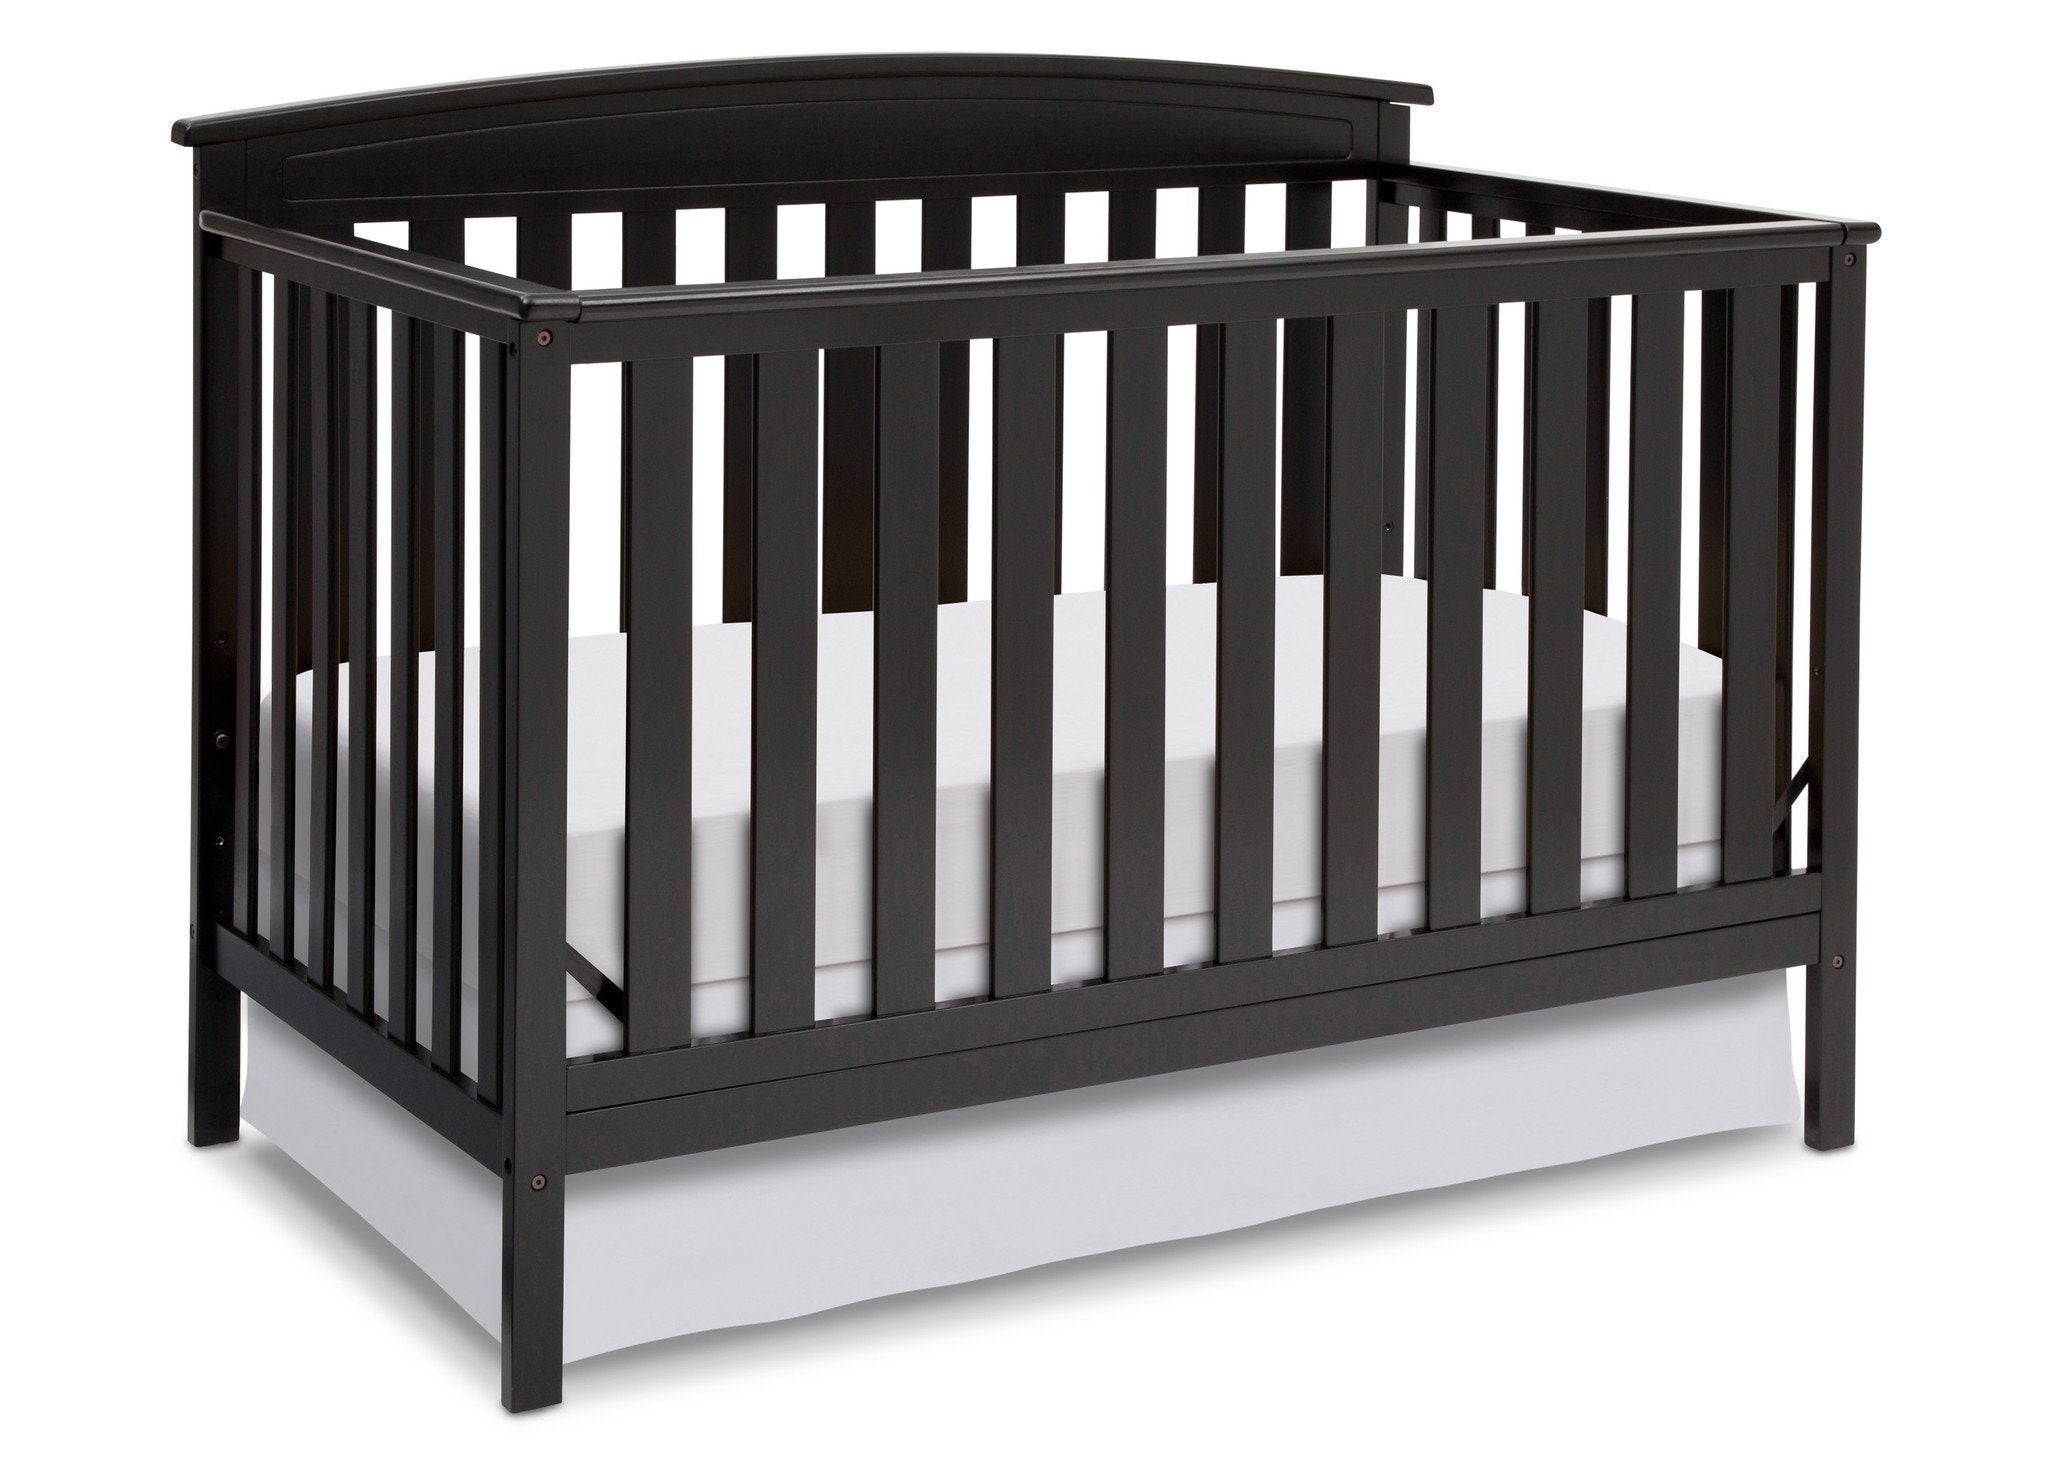 Delta Children Black (001) Gateway 4-in-1 Crib, Crib Conversion a3a